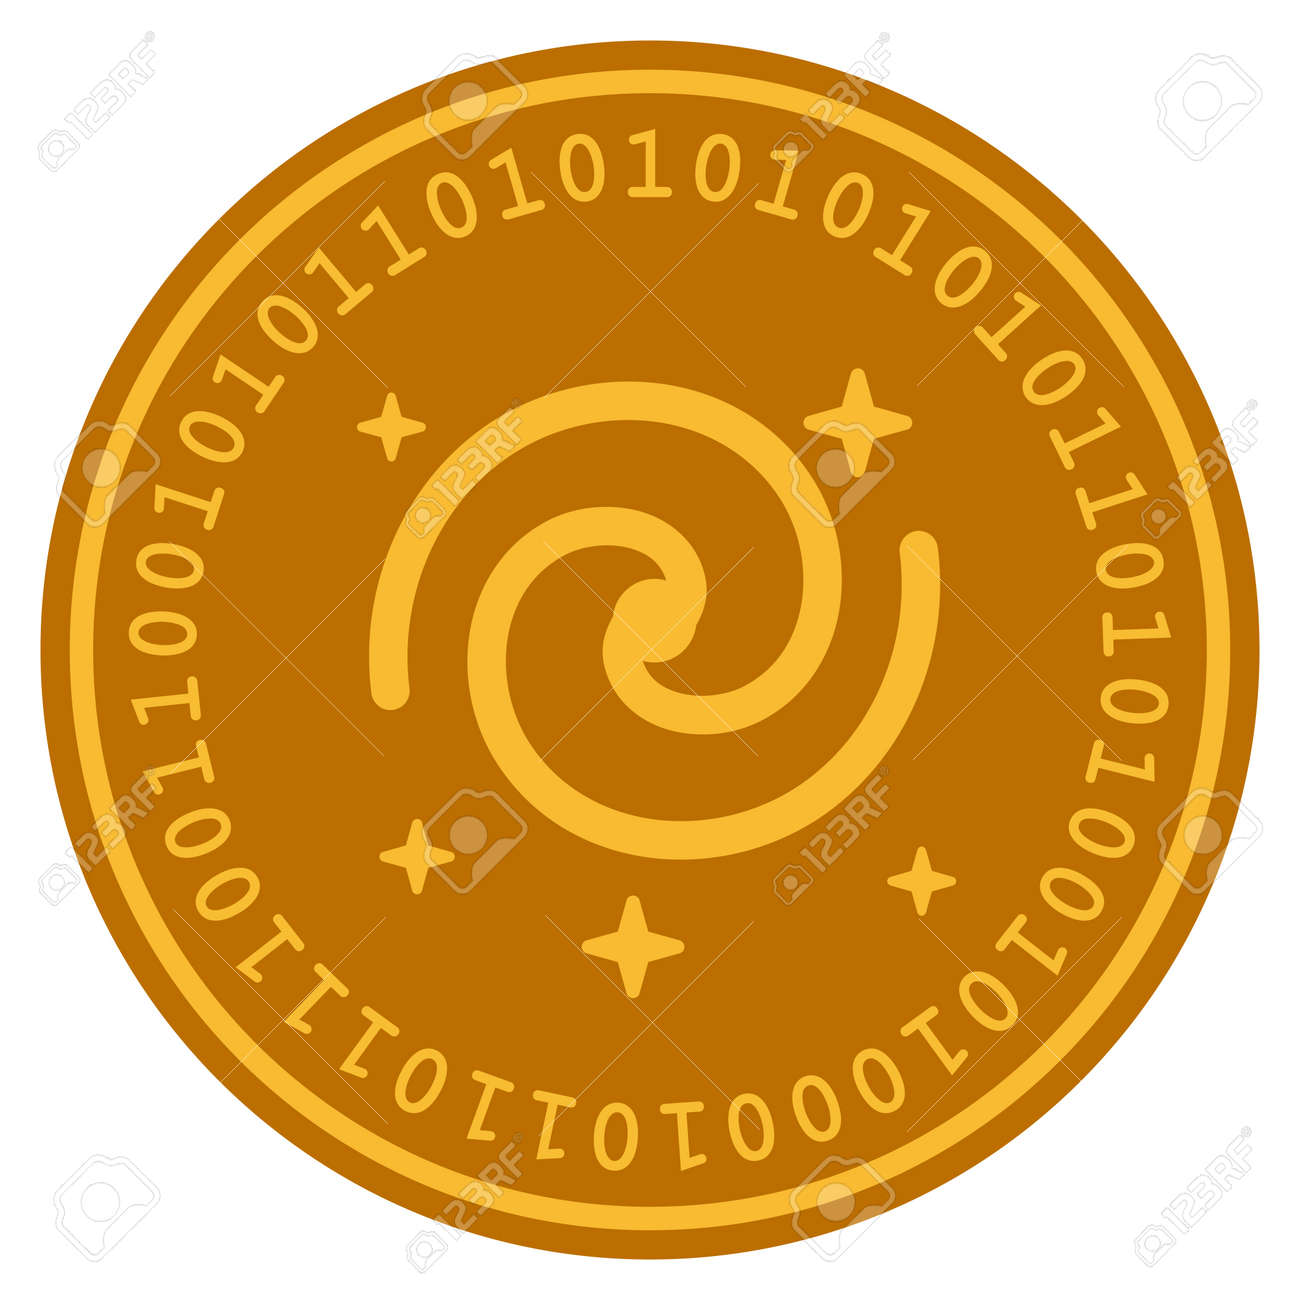 Galaxycoin crypto currency have i got bitcoins